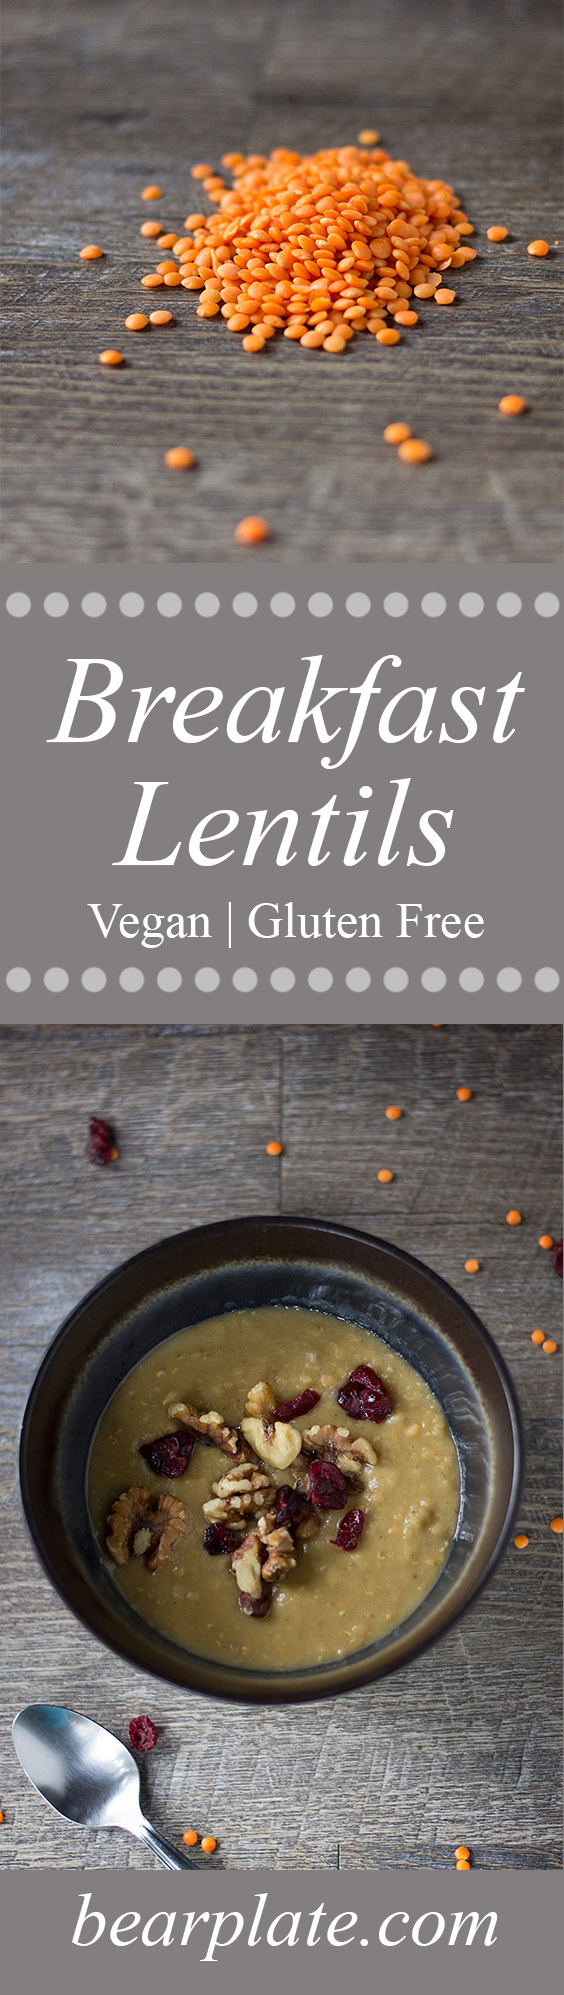 Breakfast Lentils! Perfect for backpacking or at home! #vegan #glutenfree #plantbased #breakfast #backpacking #recipe